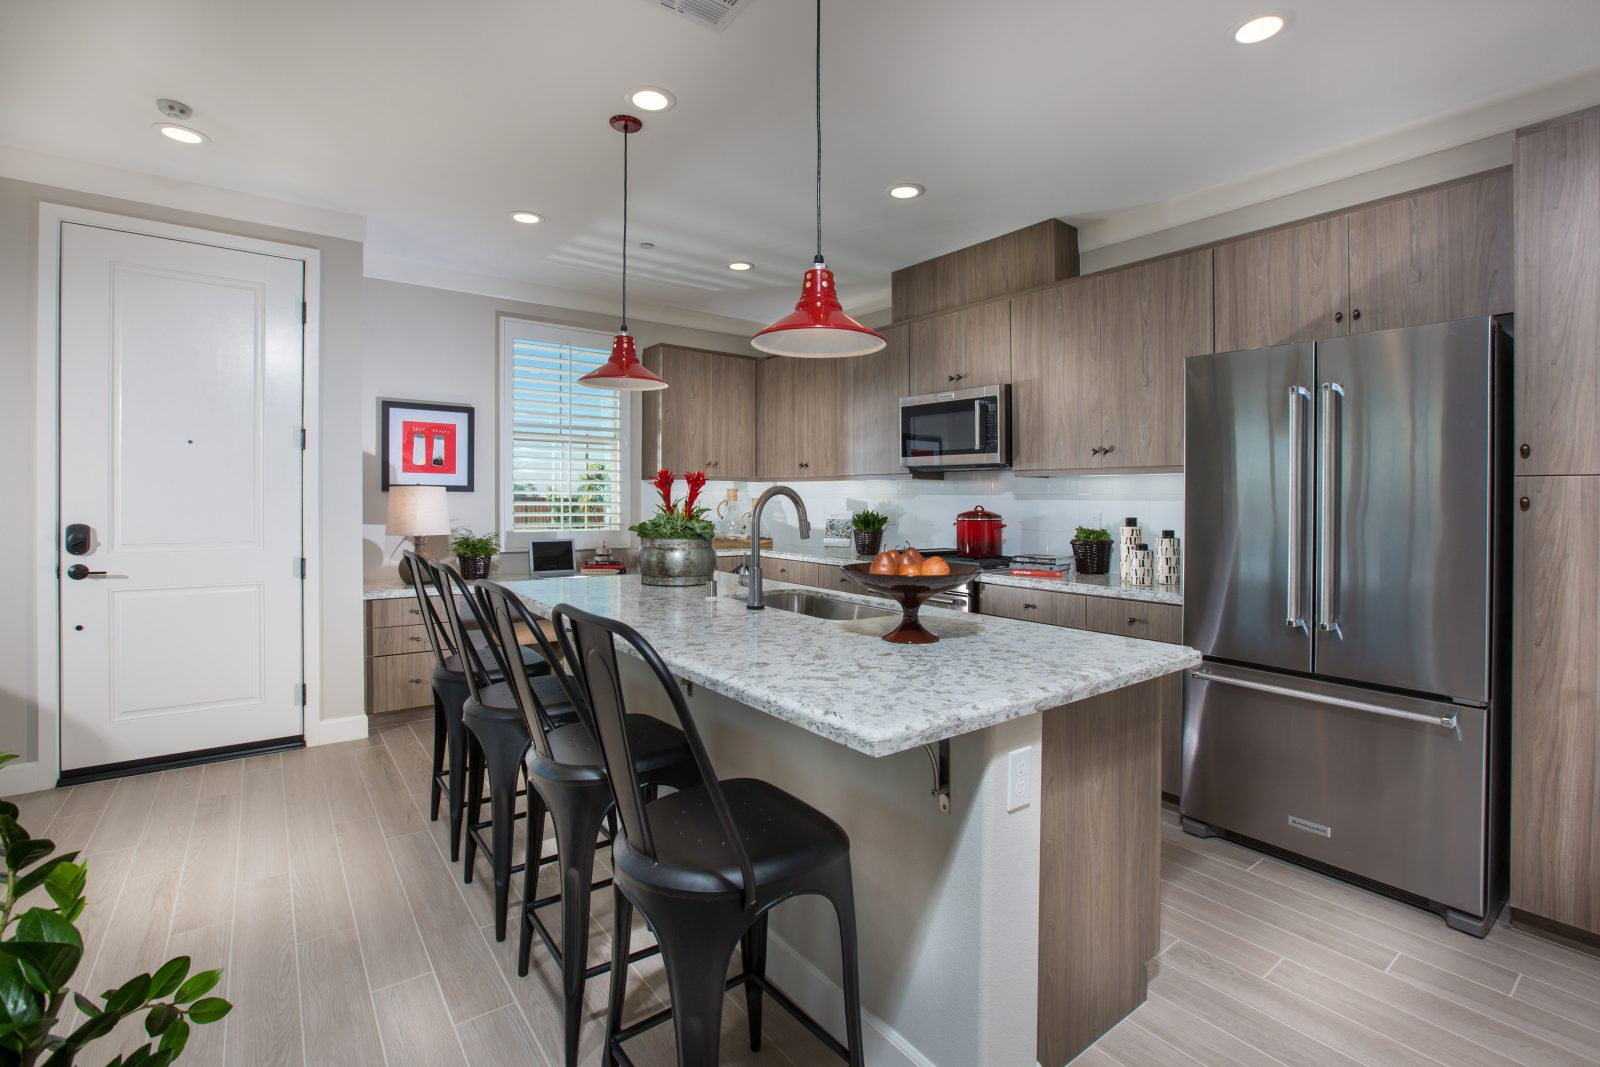 Kitchen | Holiday at New Haven in Ontario Ranch, CA | Brookfield Residential